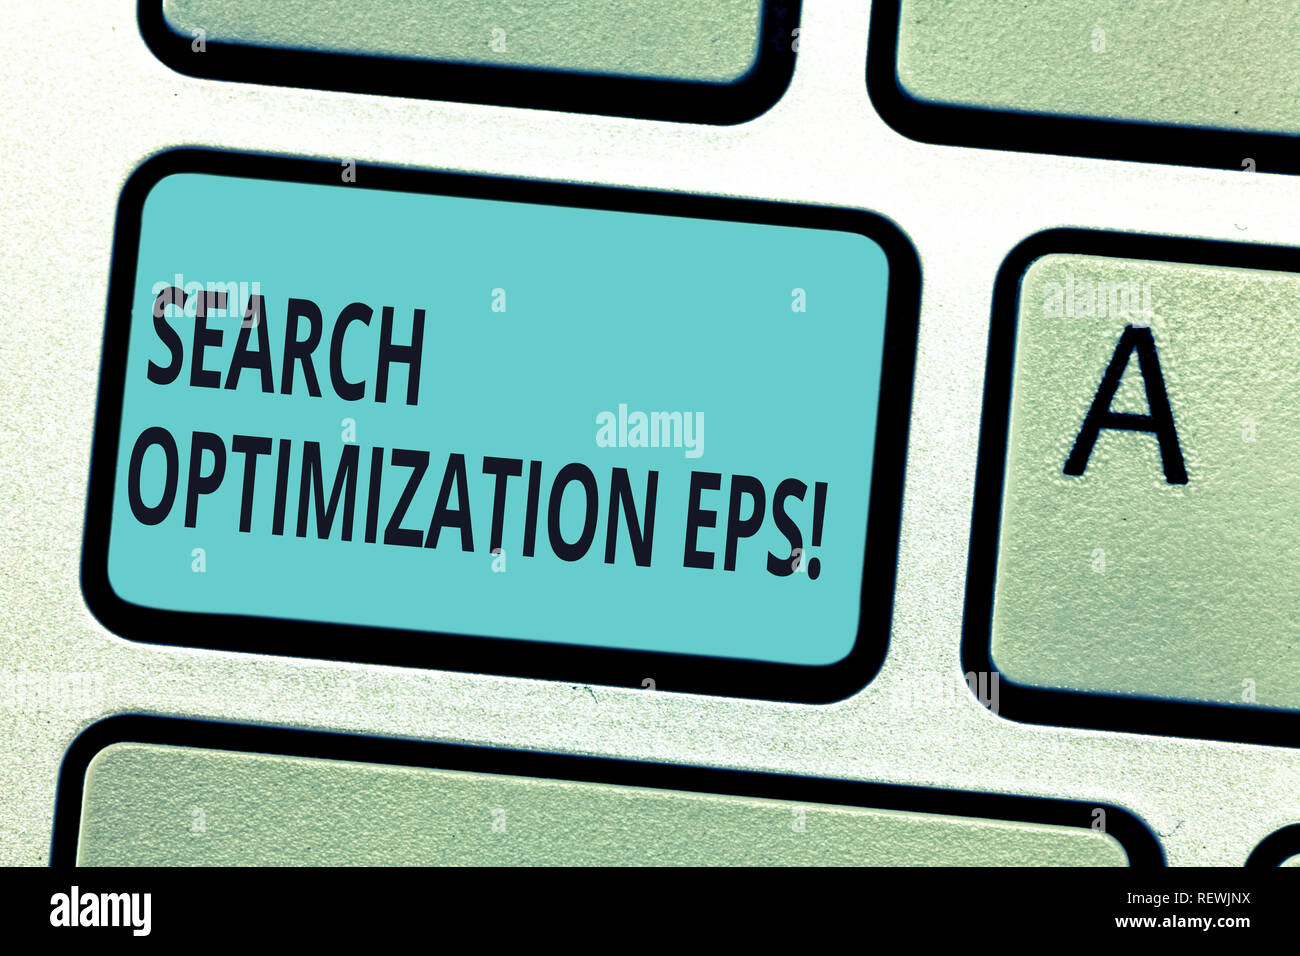 Notez par écrit l'optimisation de la recherche montrant eps. Photo d'entreprise processus mettant en affectant la visibilité d'un site web touche clavier Intention de créer Photo Stock